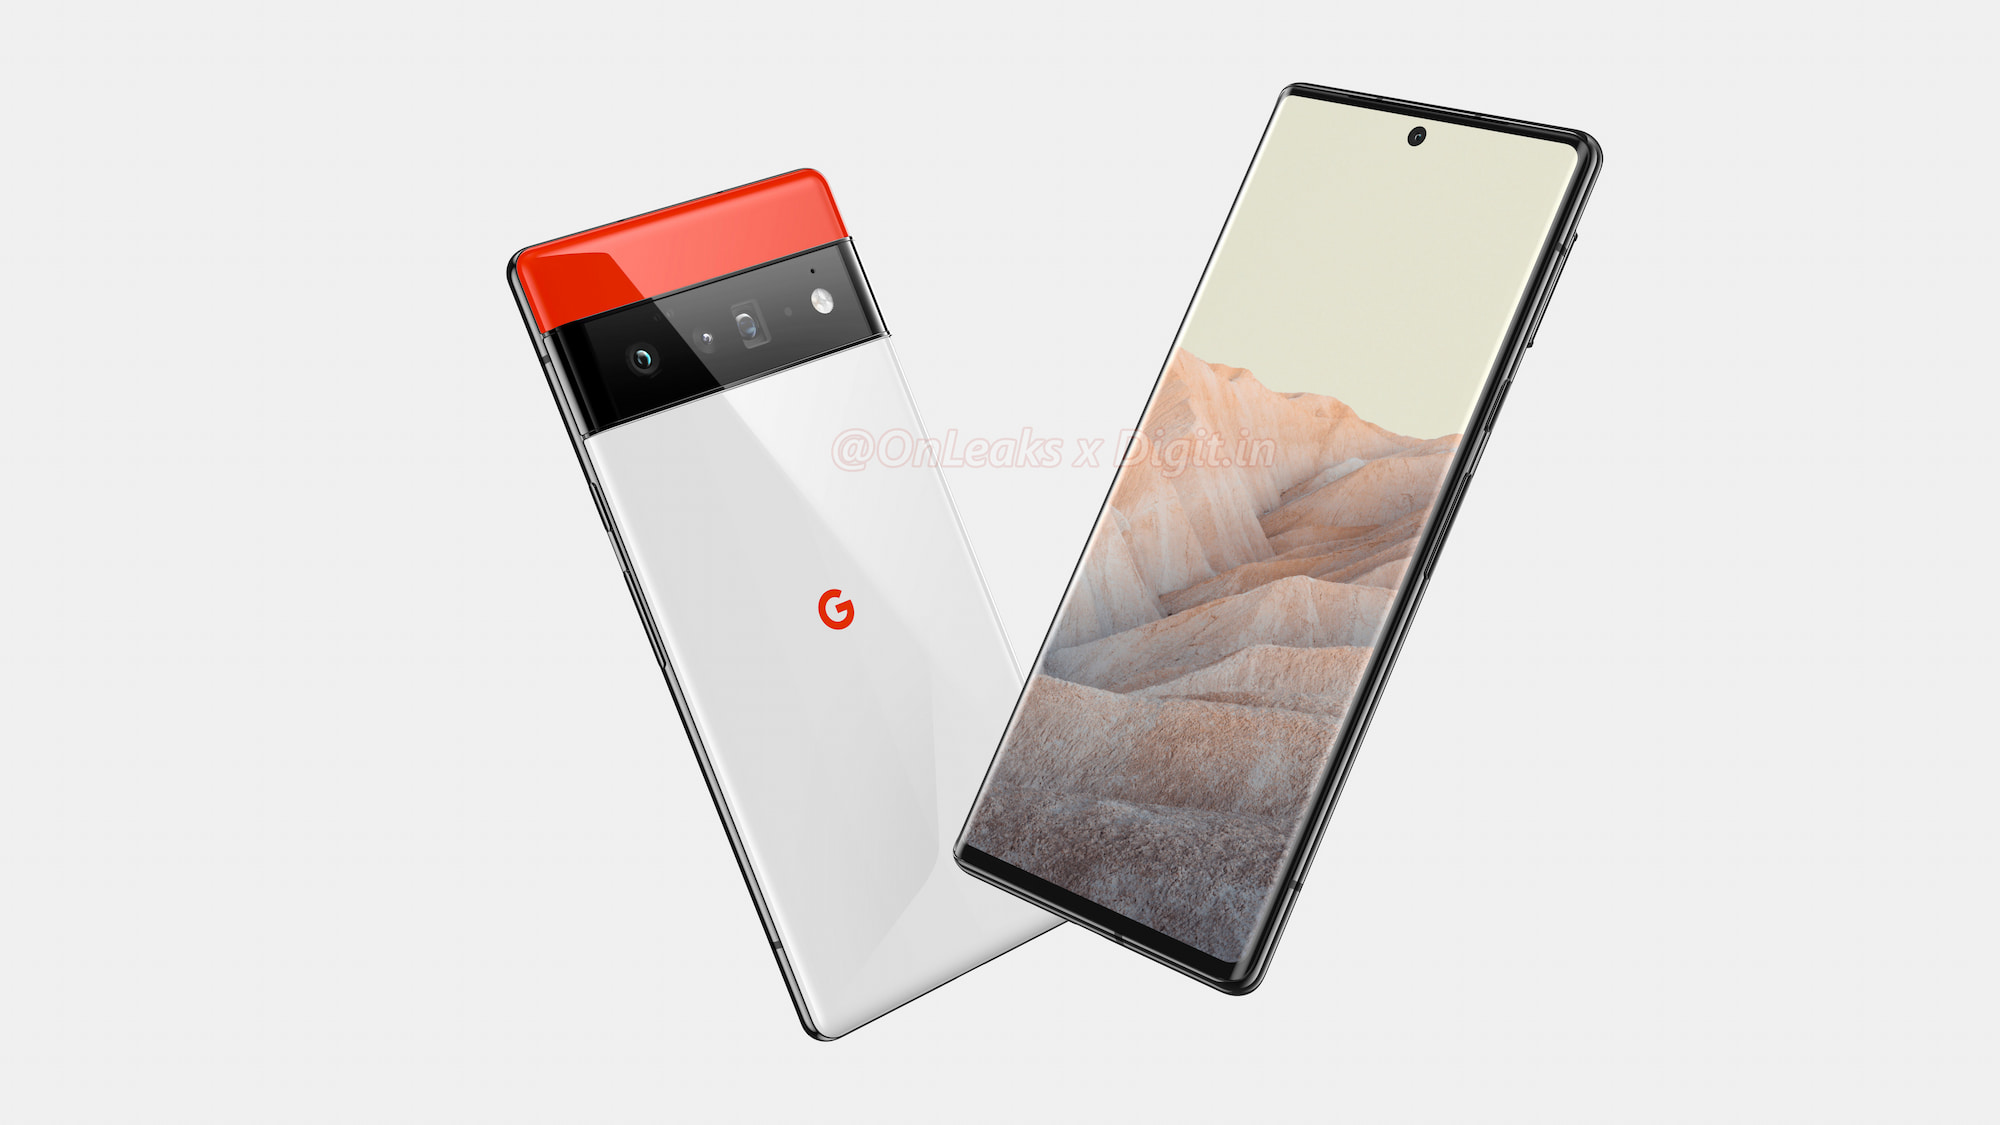 New Pixel 6 Pro renders surface, showing off seriously beautiful hardware